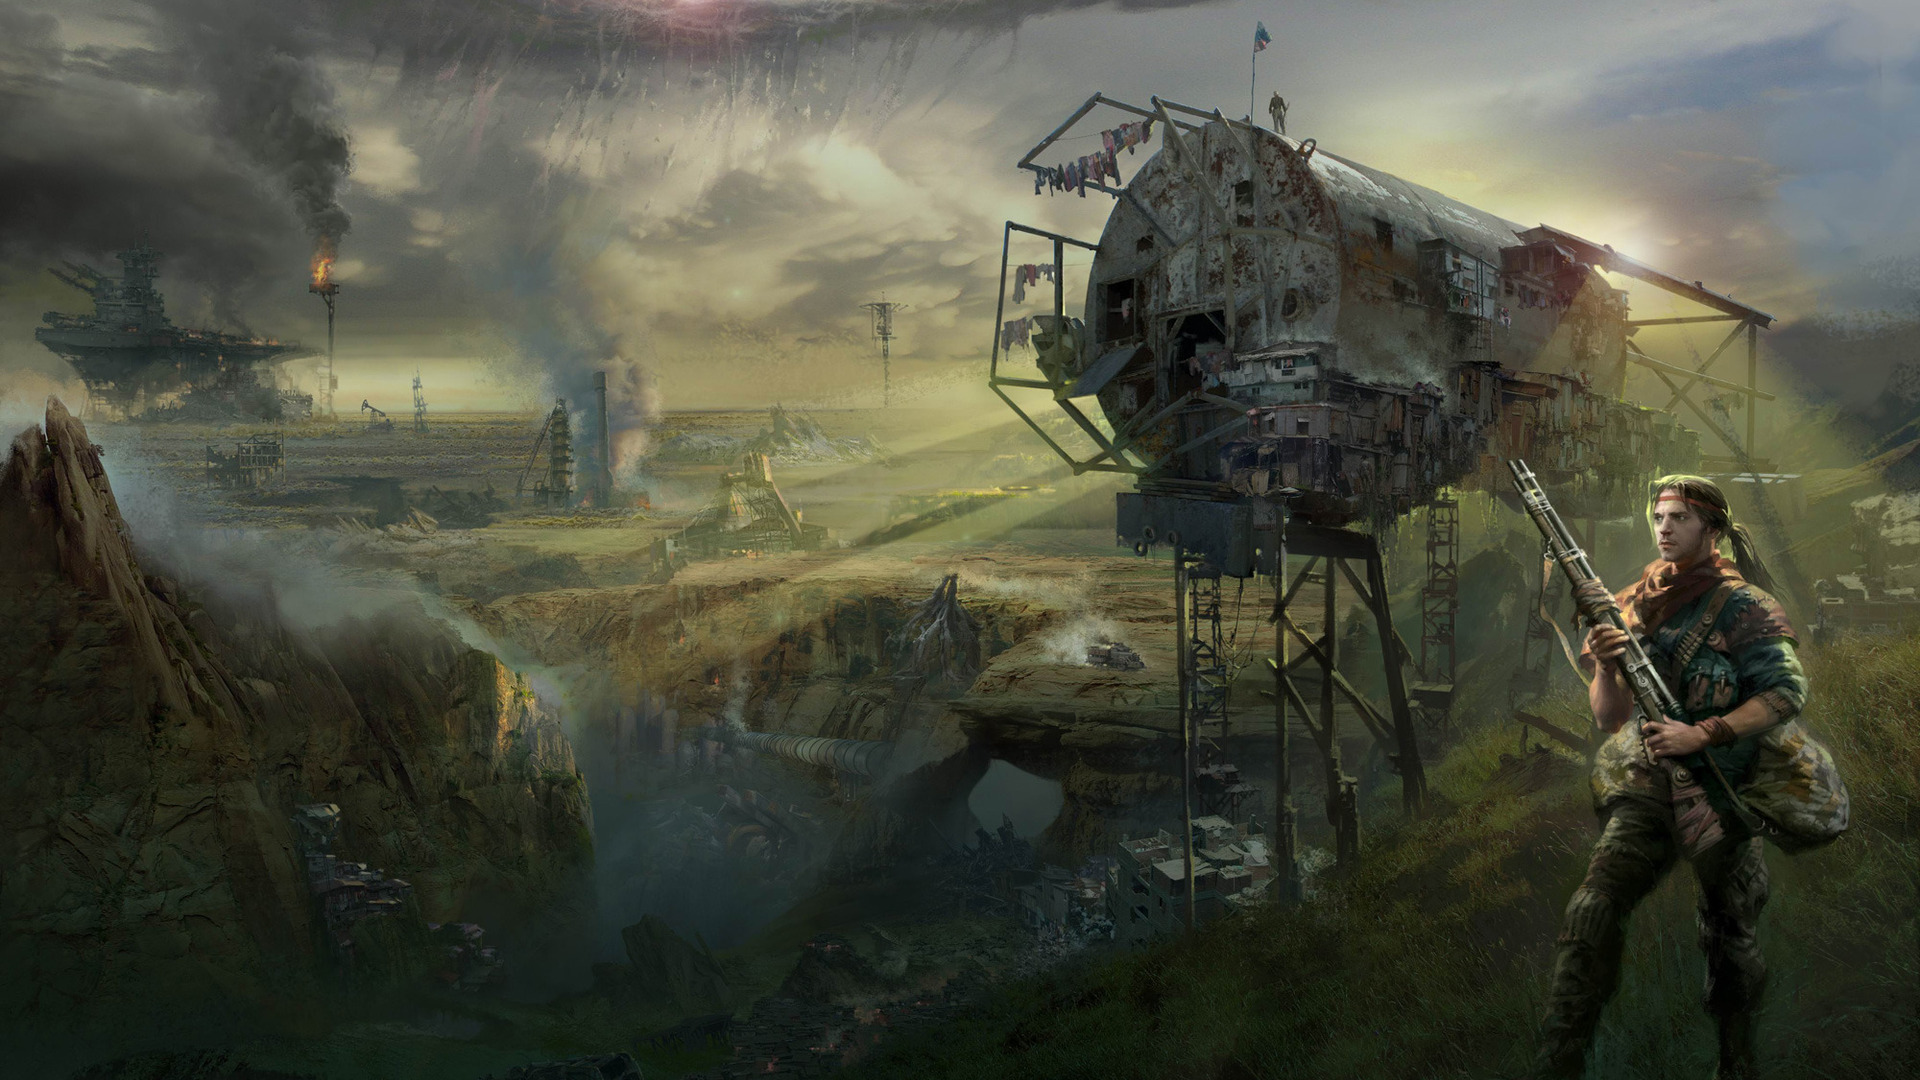 Post Apocalyptic Hd Wallpaper Background Image 1920x1080